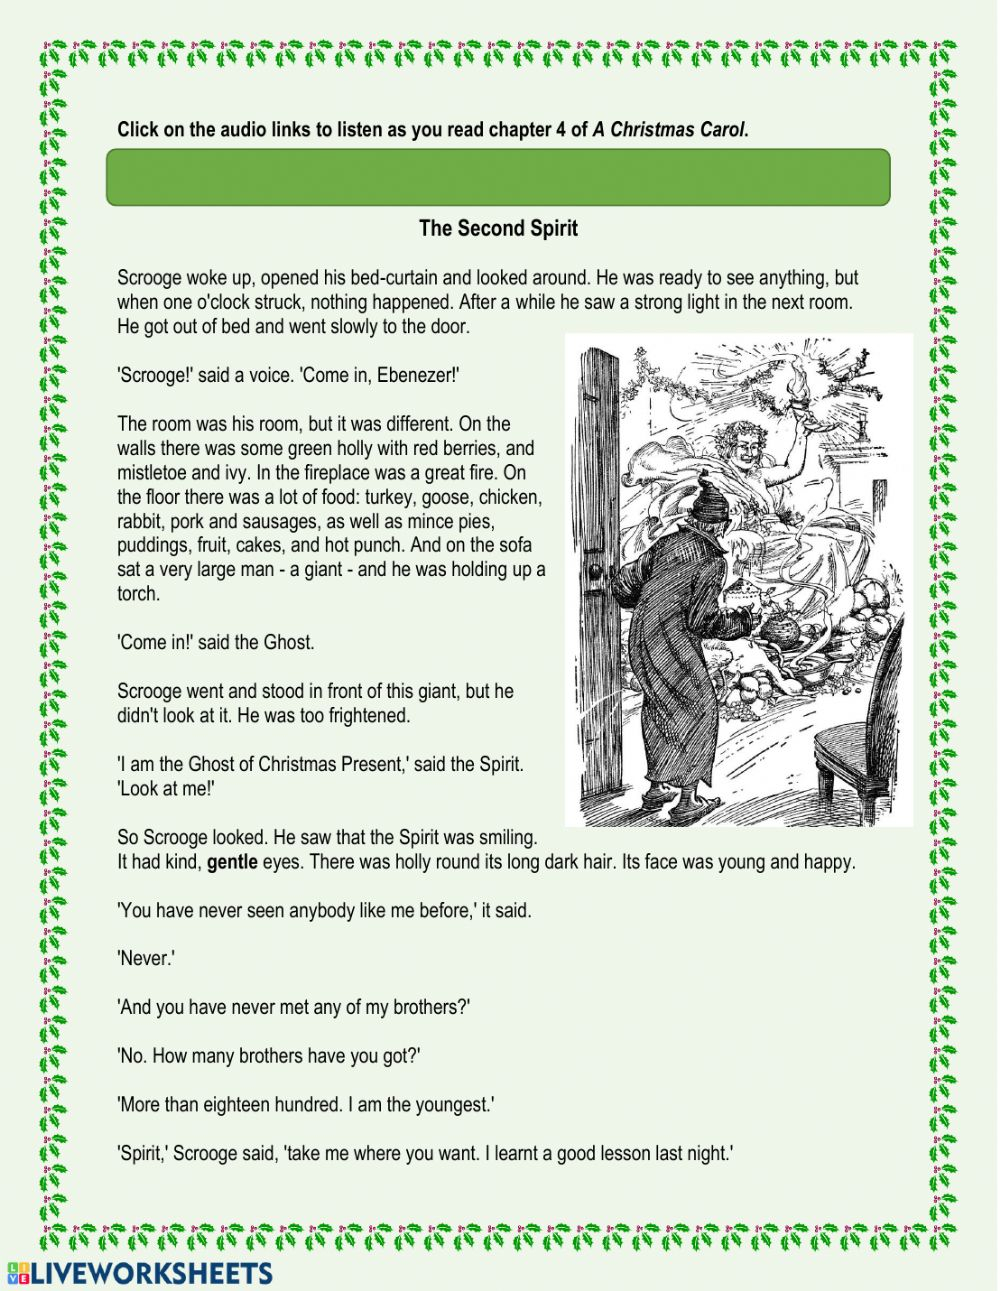 A Christmas Carol - Chapter 4 Worksheet